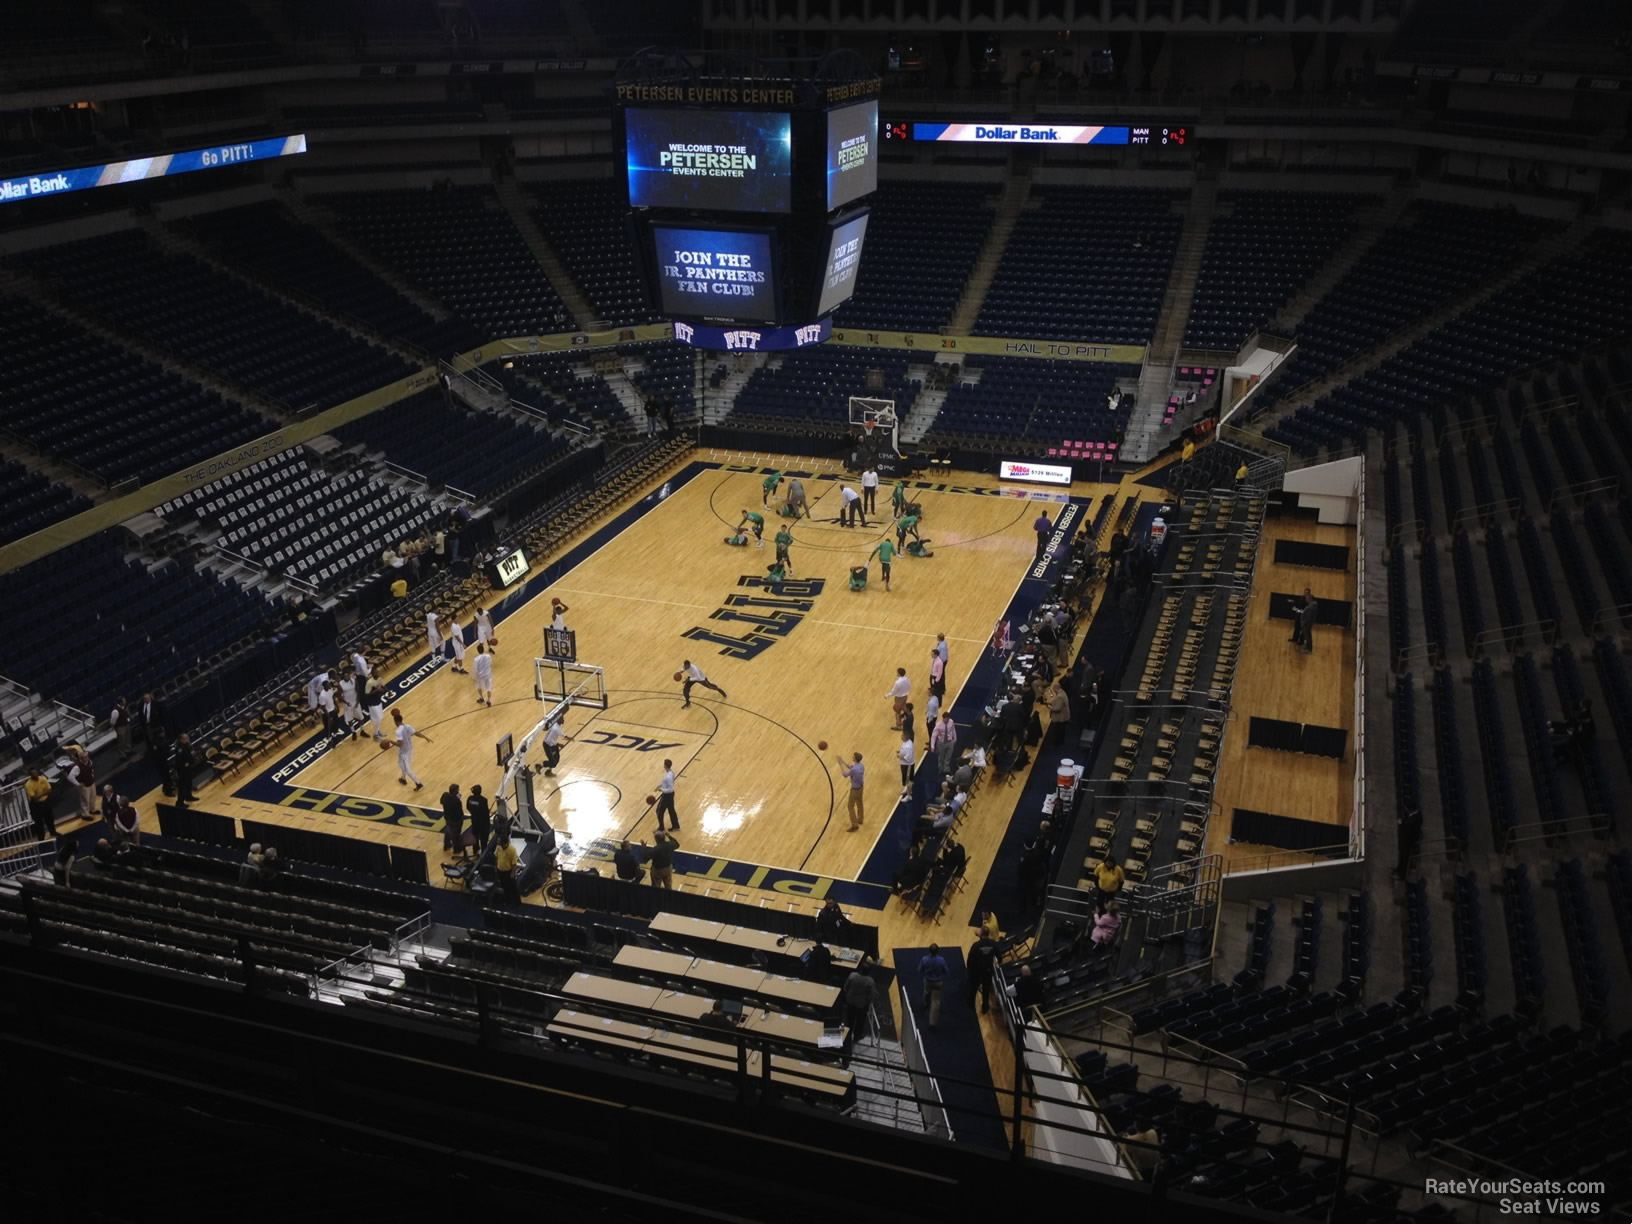 Seat View for Petersen Events Center Section 201, Row F